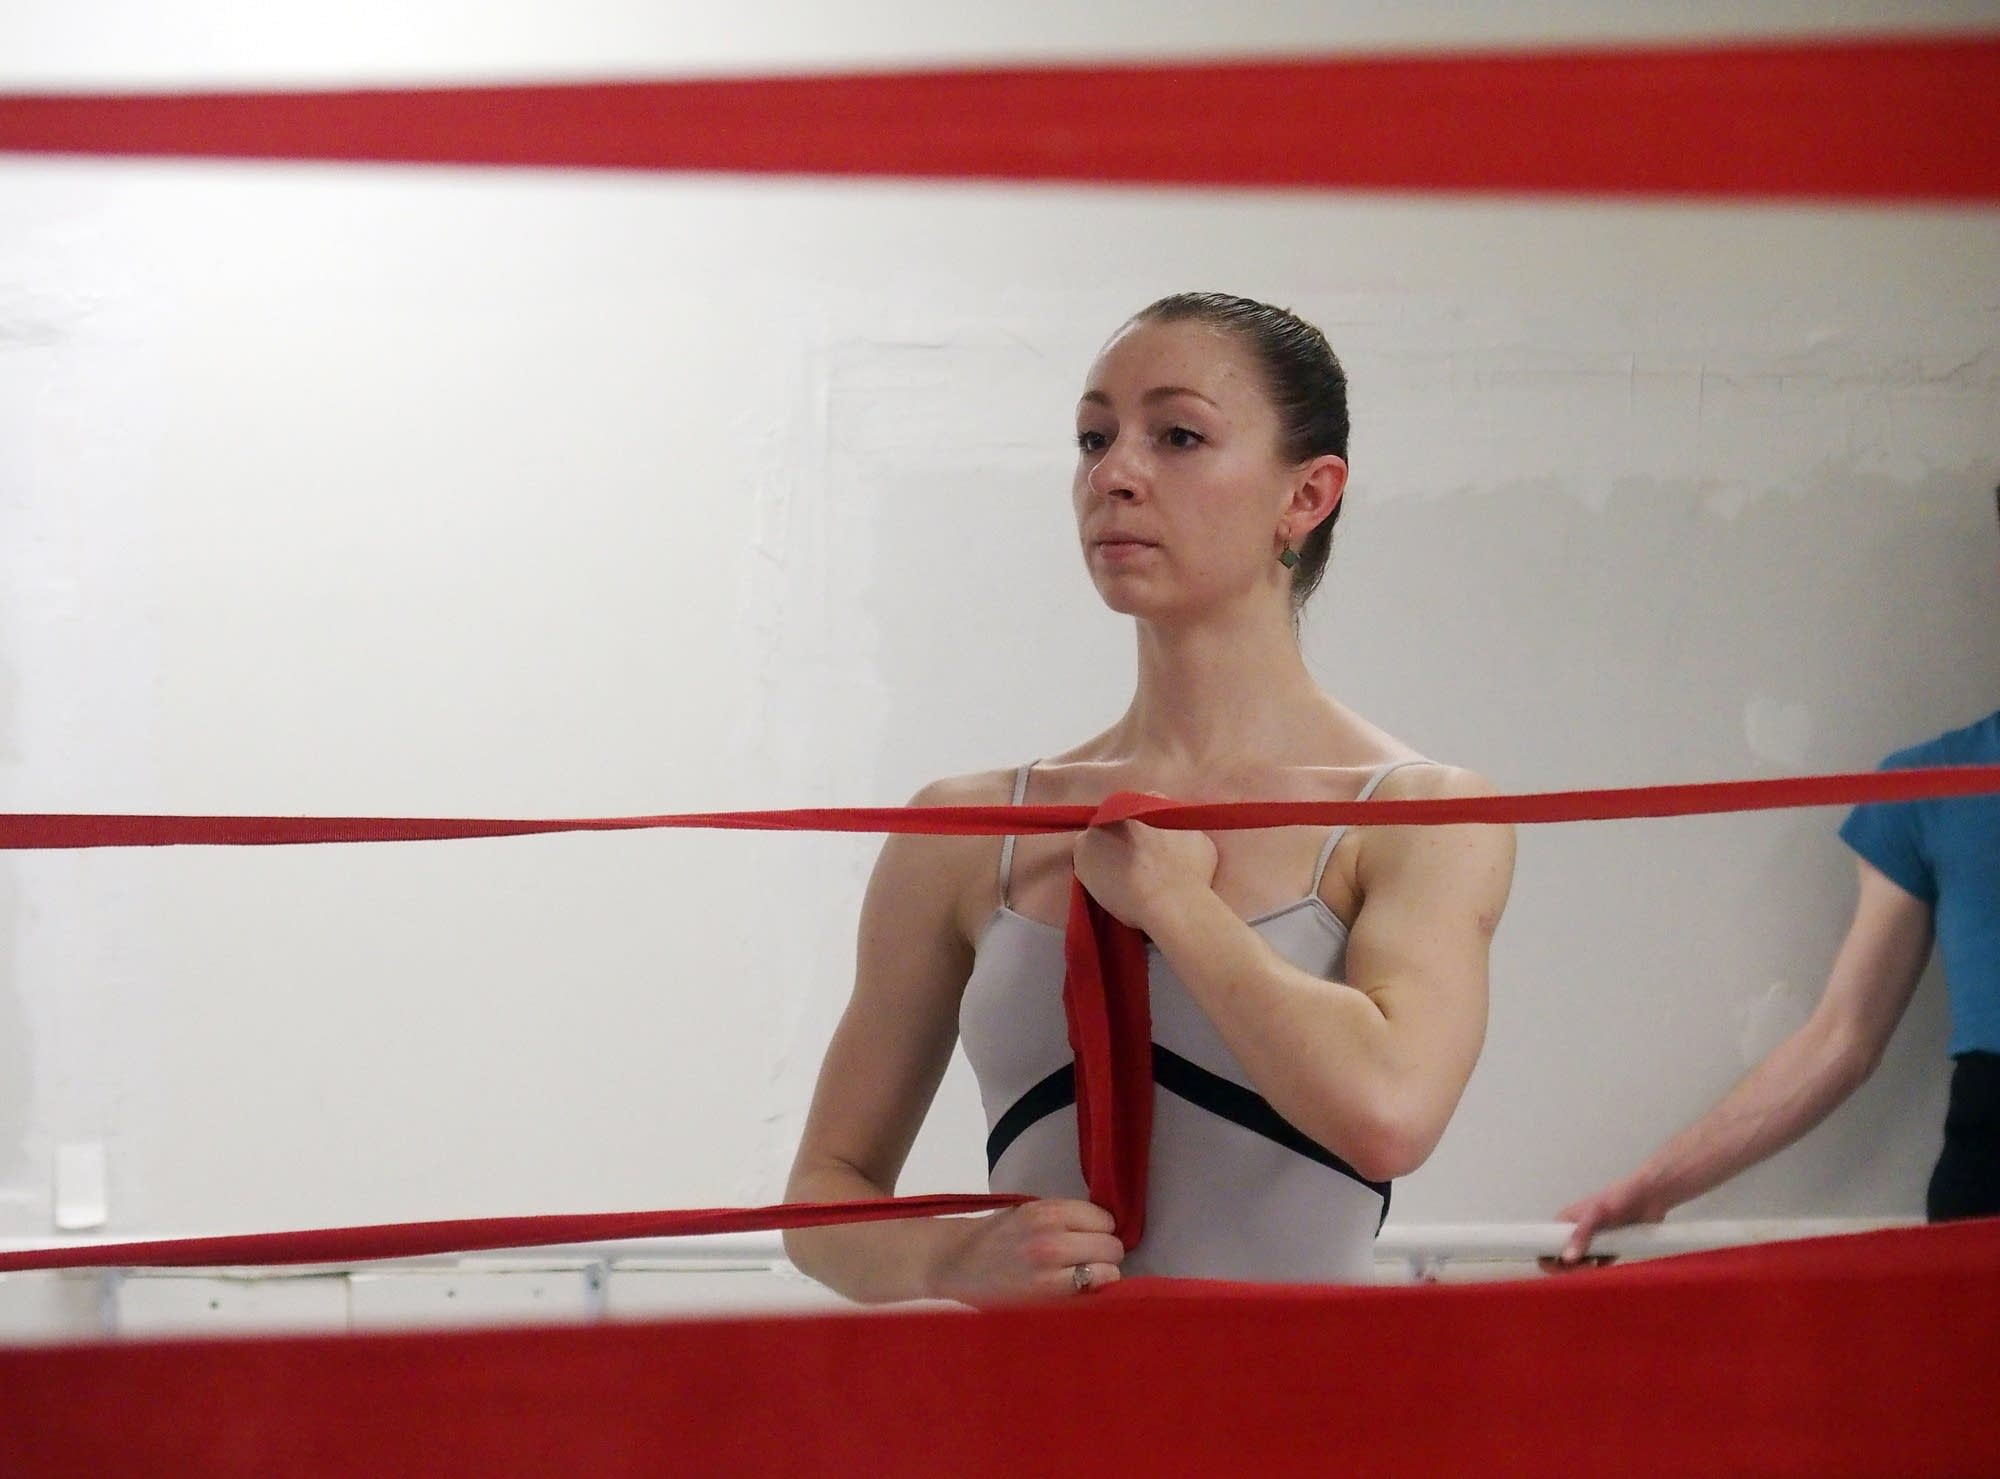 St. Paul Ballet Artistic Director Zoe Henrot is dancing in 'To Billy.'